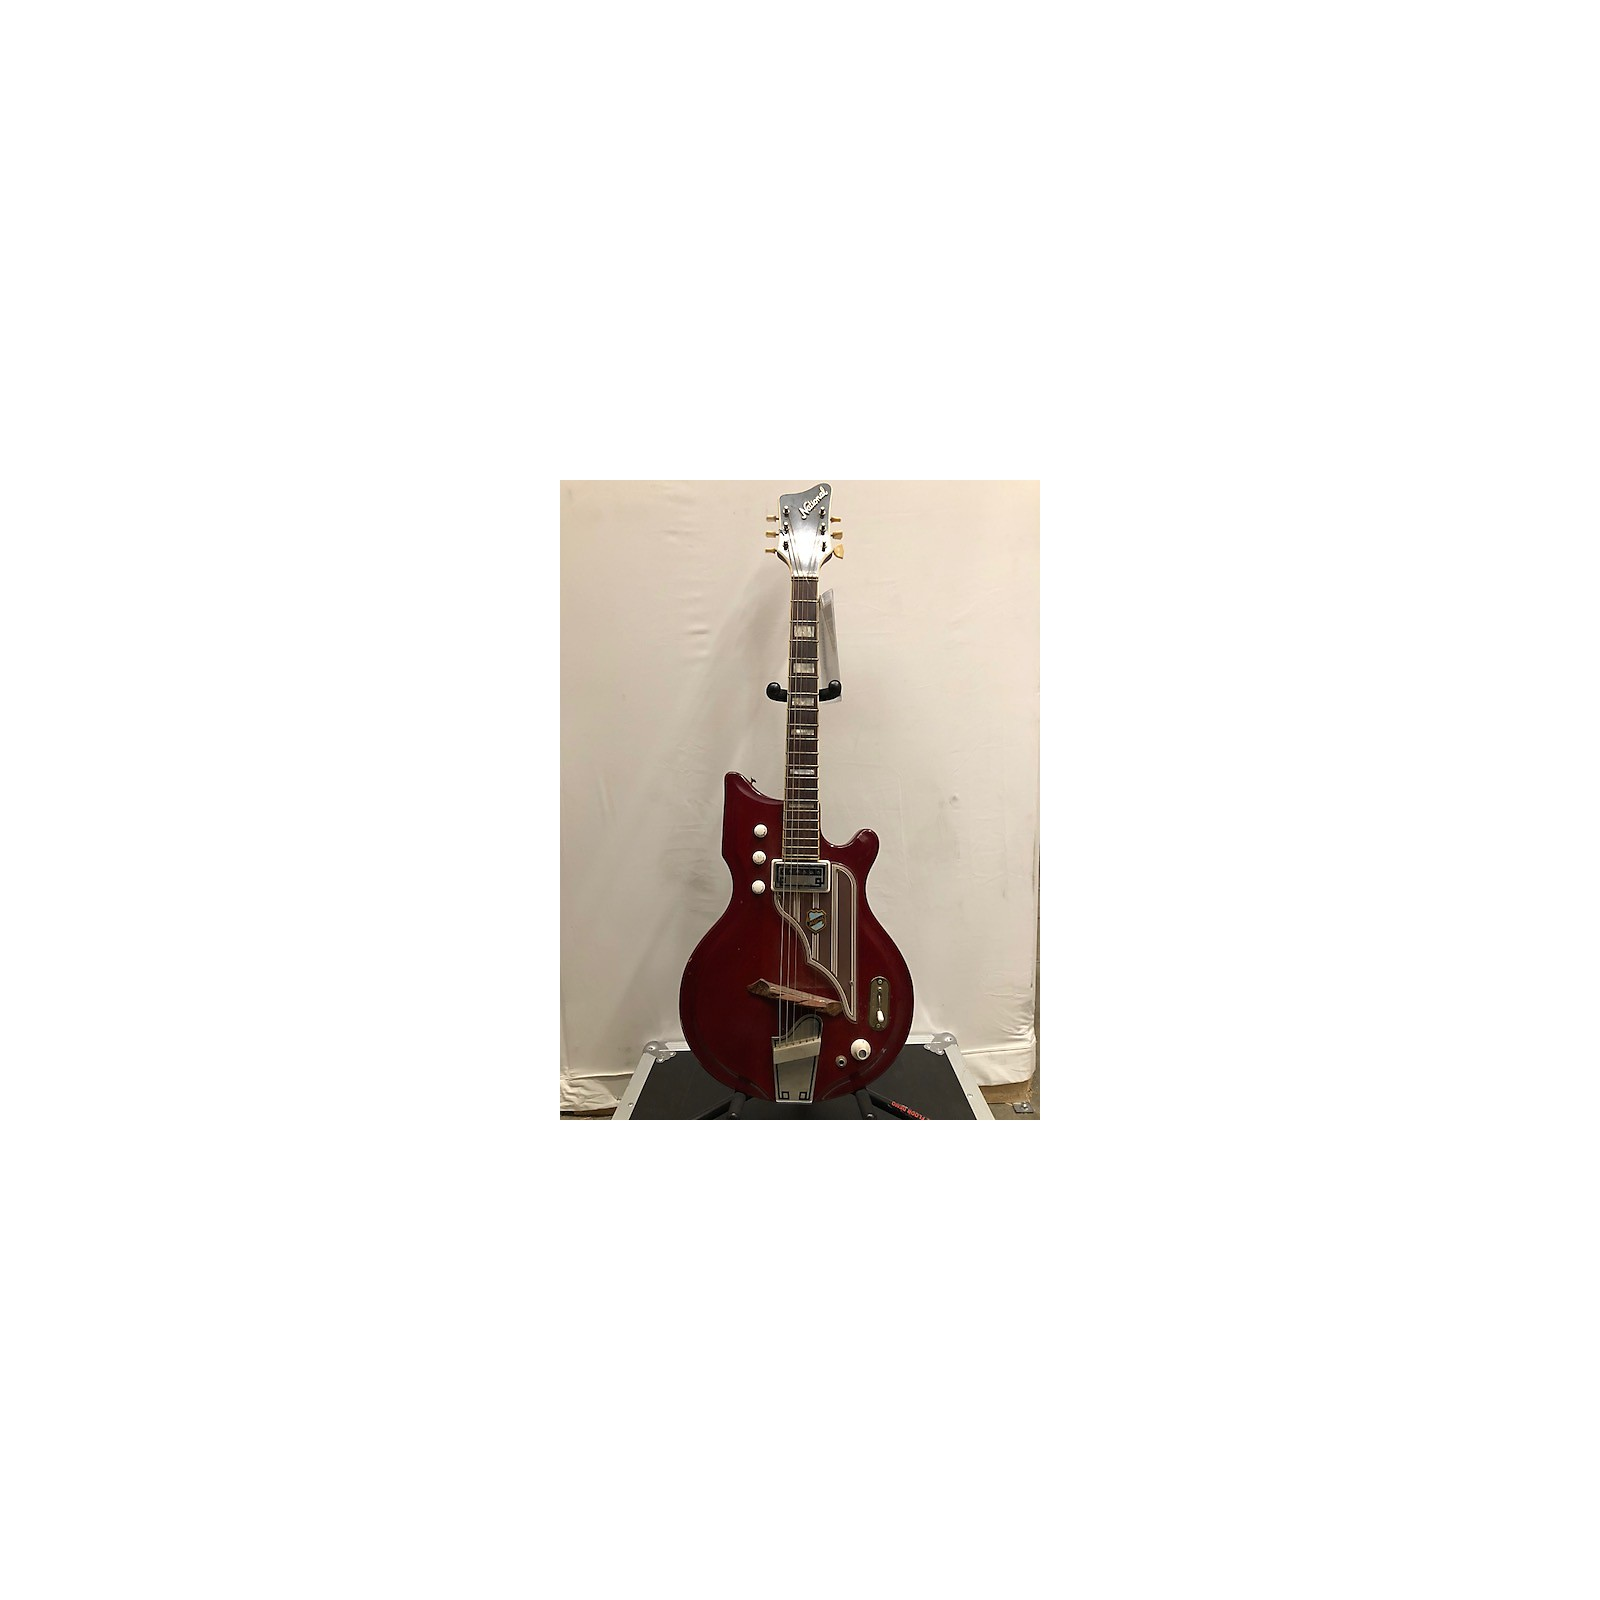 National 1965 Westwood 75 Solid Body Electric Guitar